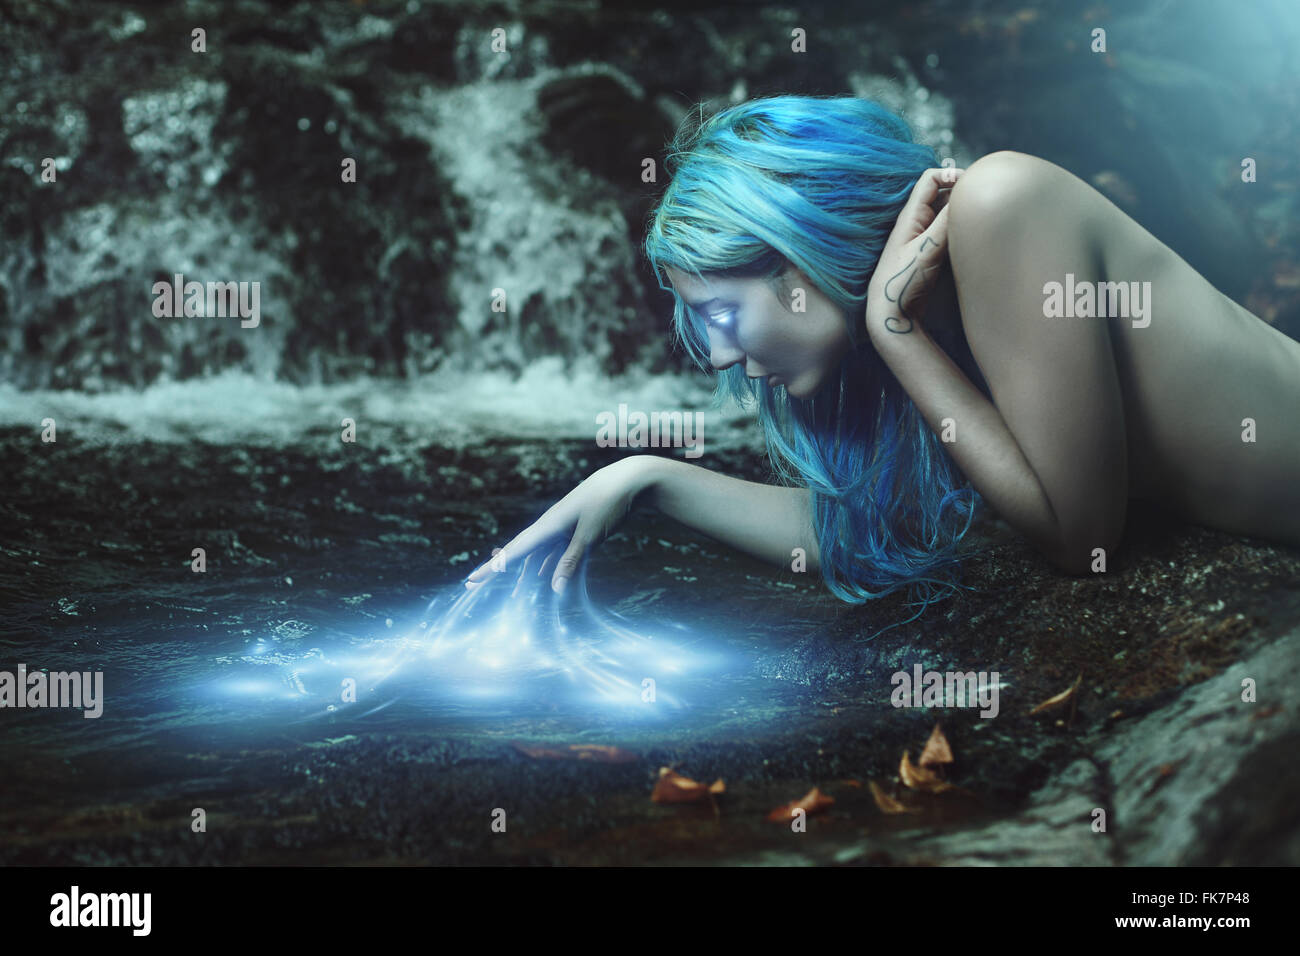 River nymph with magical water energies . Fantasy and myth - Stock Image